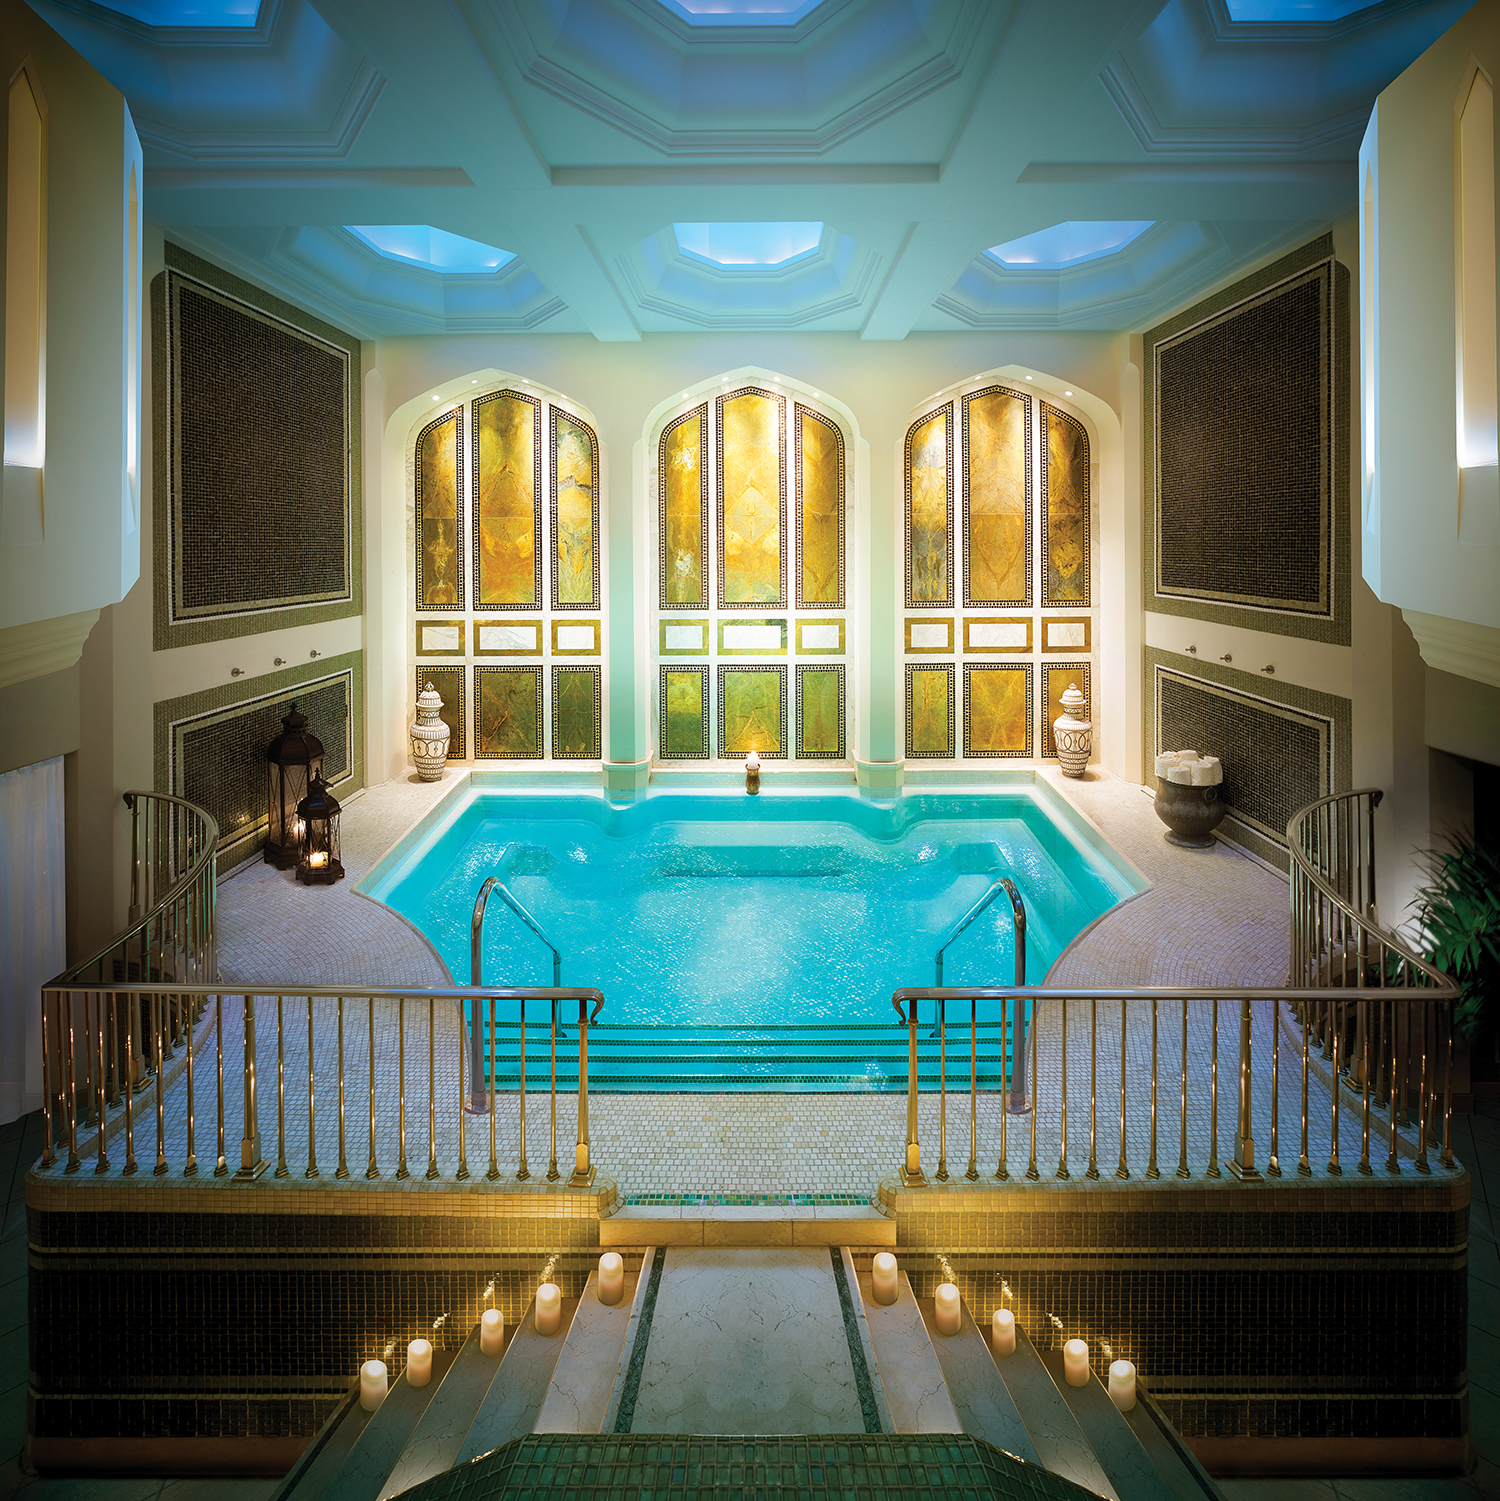 In honor of Montage Beverly Hills' 10th anniversary, Spa Montage is offering The Perfect 10 spa experience.